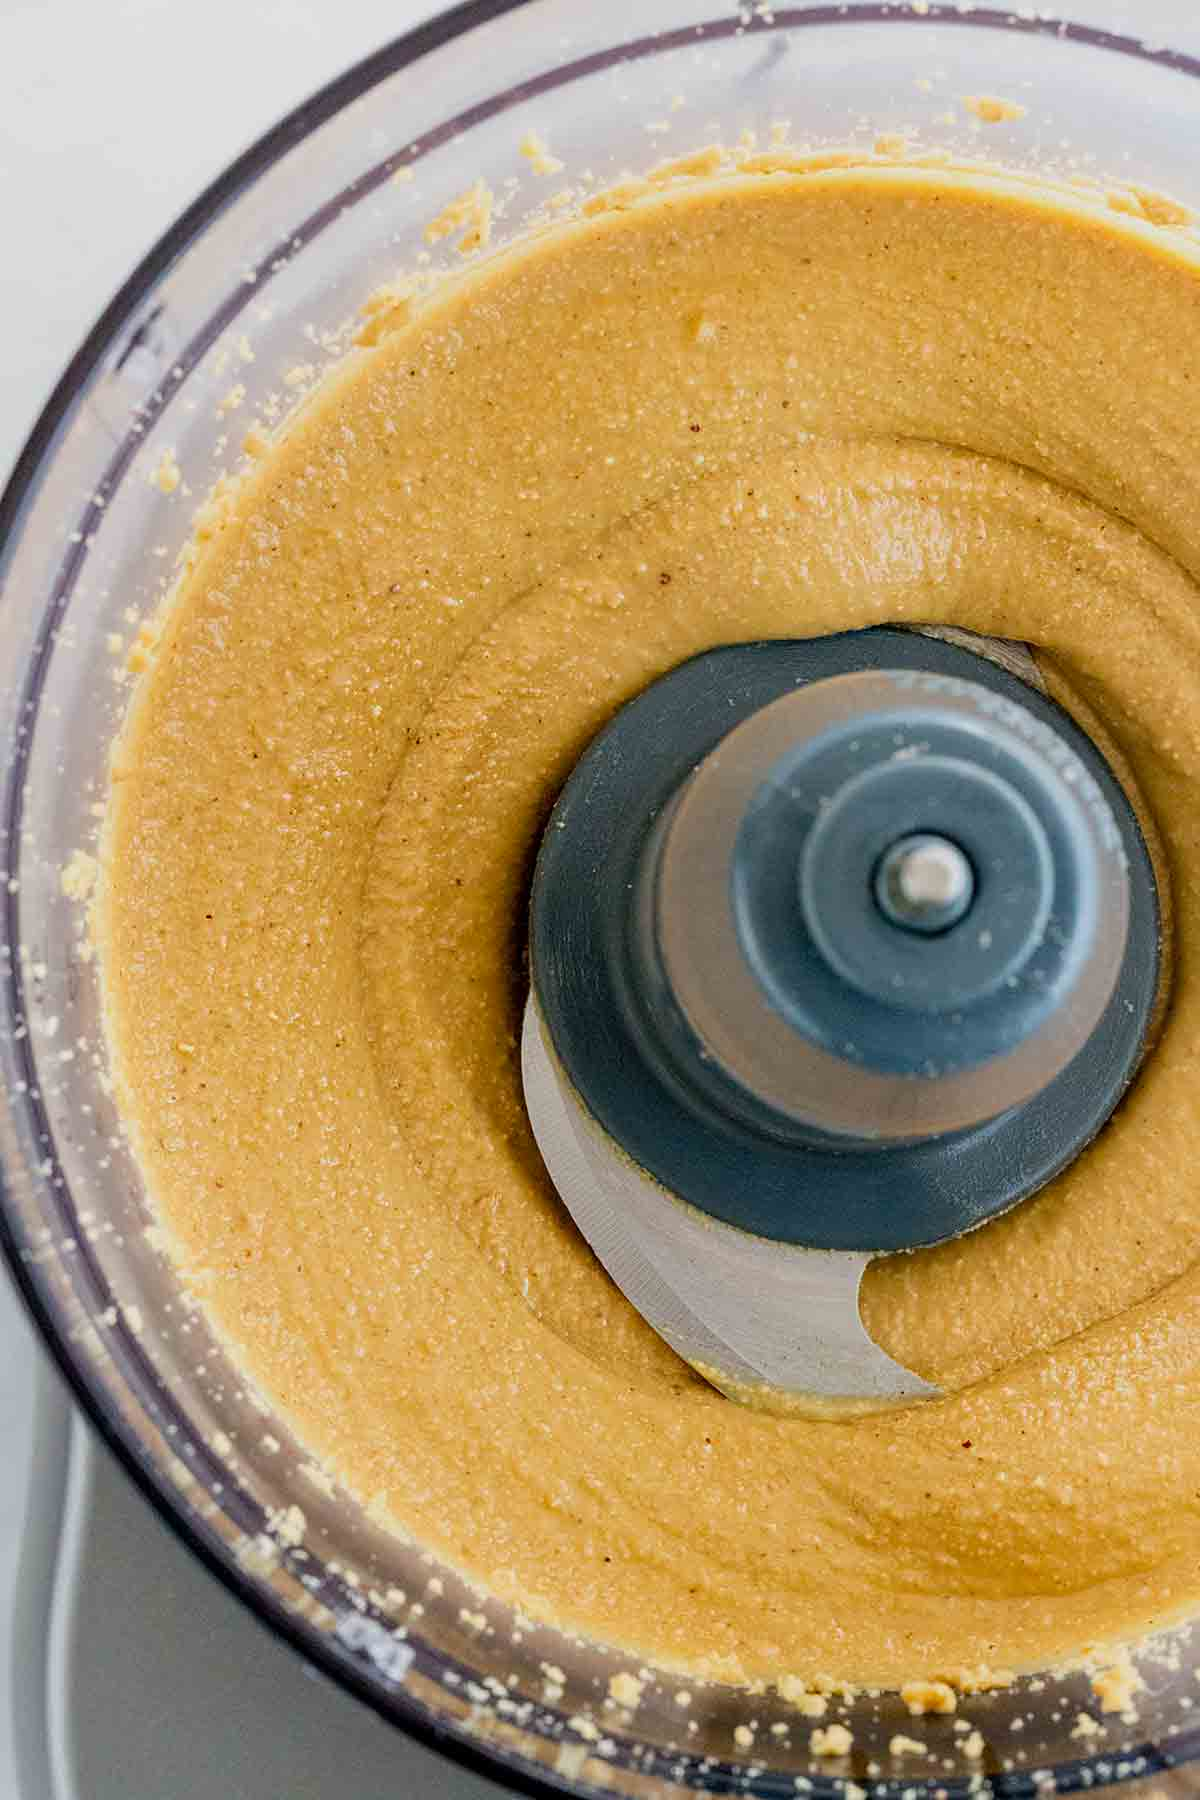 How to make peanut butter in a food processor